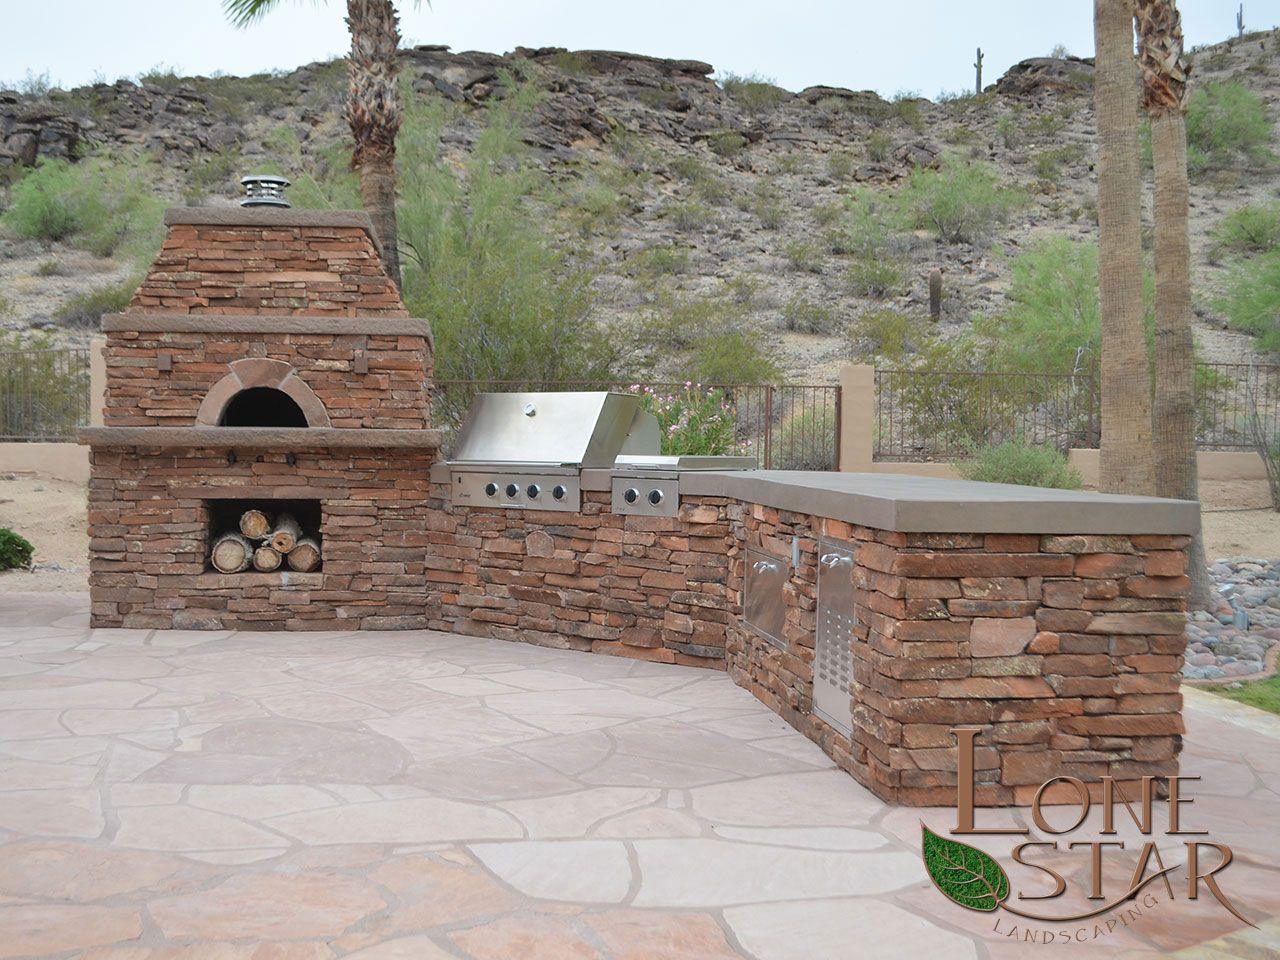 Outdoor kitchen backyard pinterest oven design backyard and kitchens - Outdoor kitchen designs with pizza oven ...